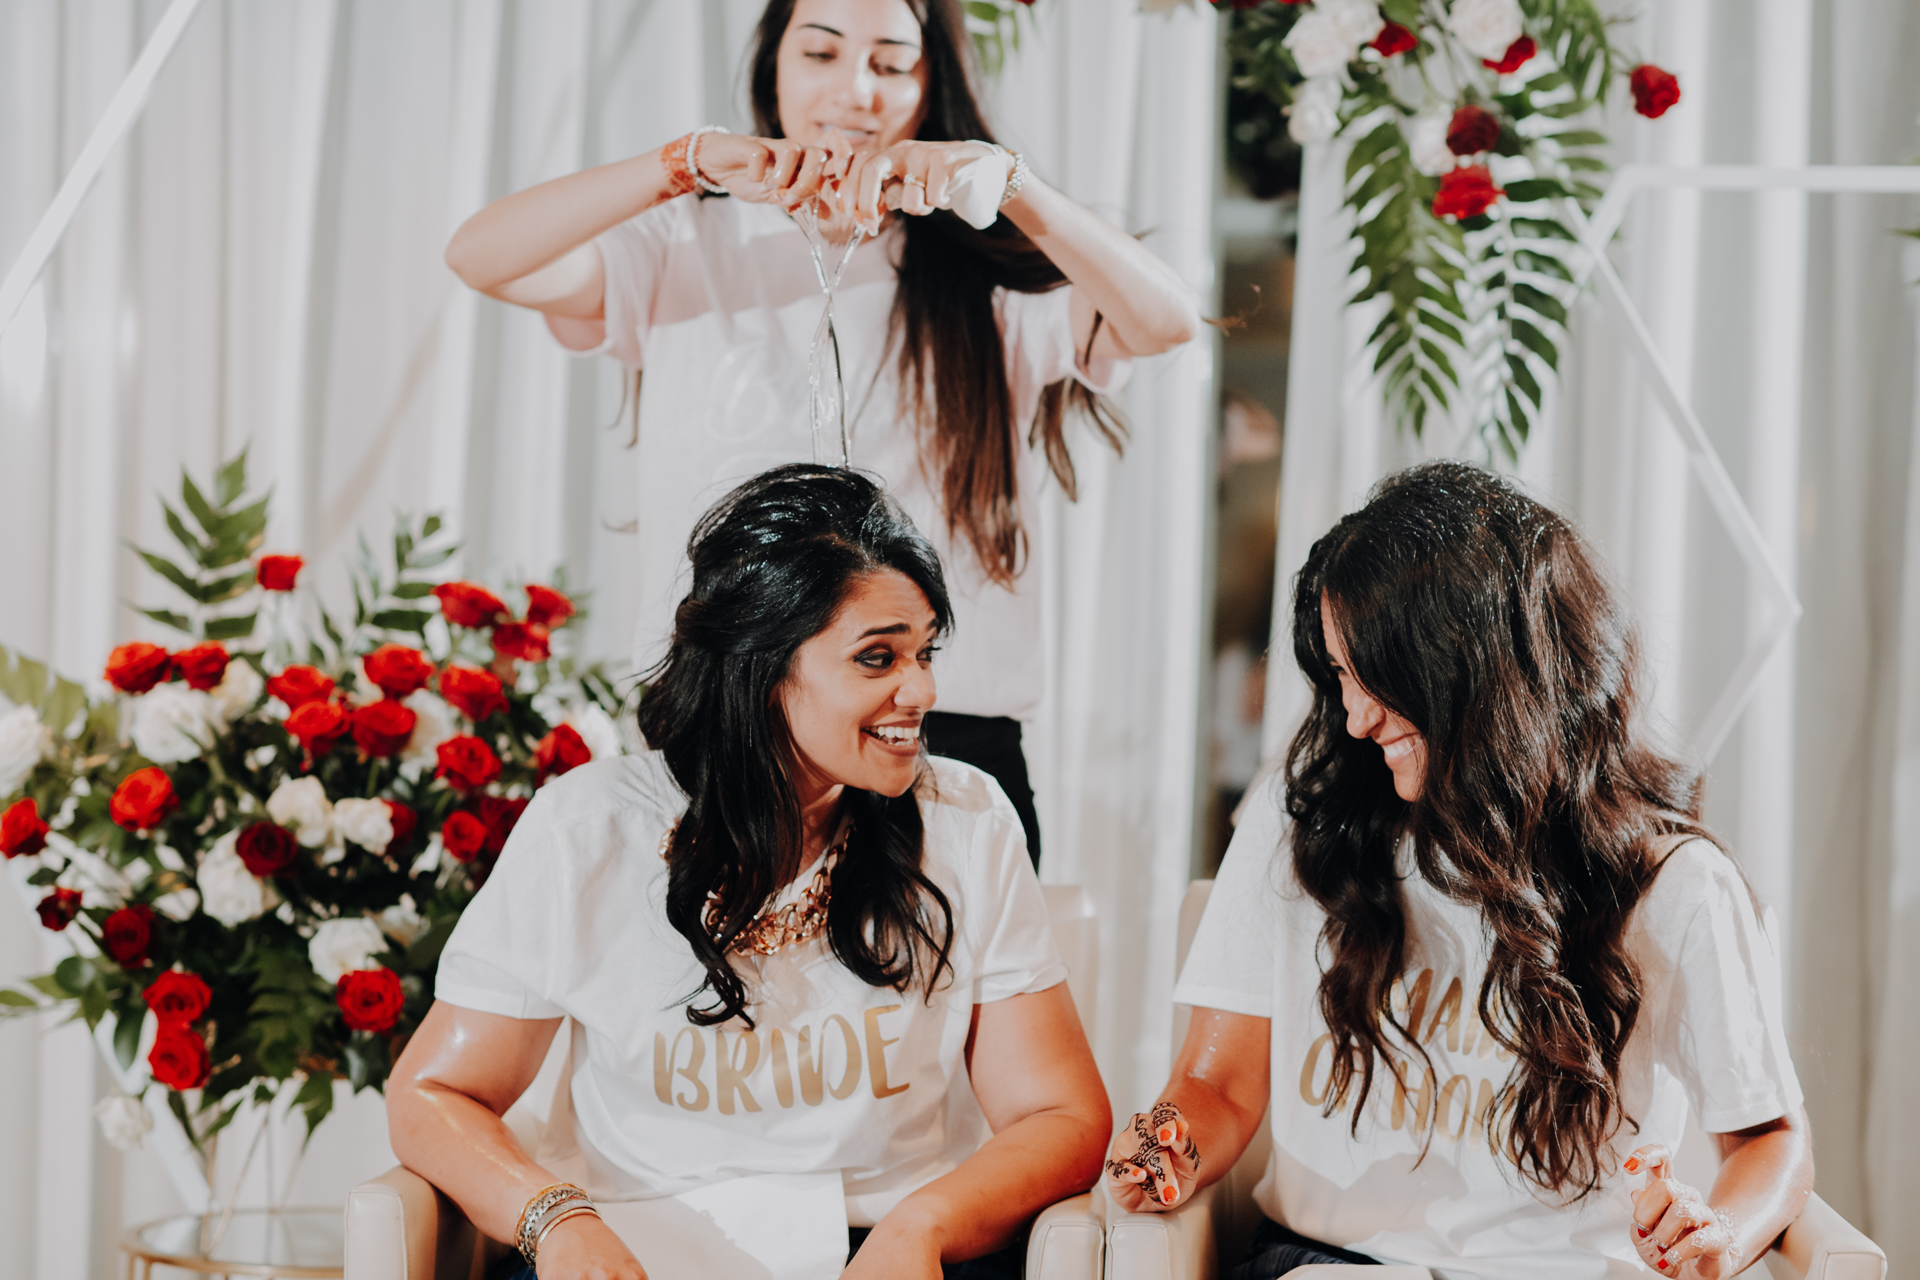 Portugal Wedding Photography for Lisbon | The bride and her maid of honor giggle